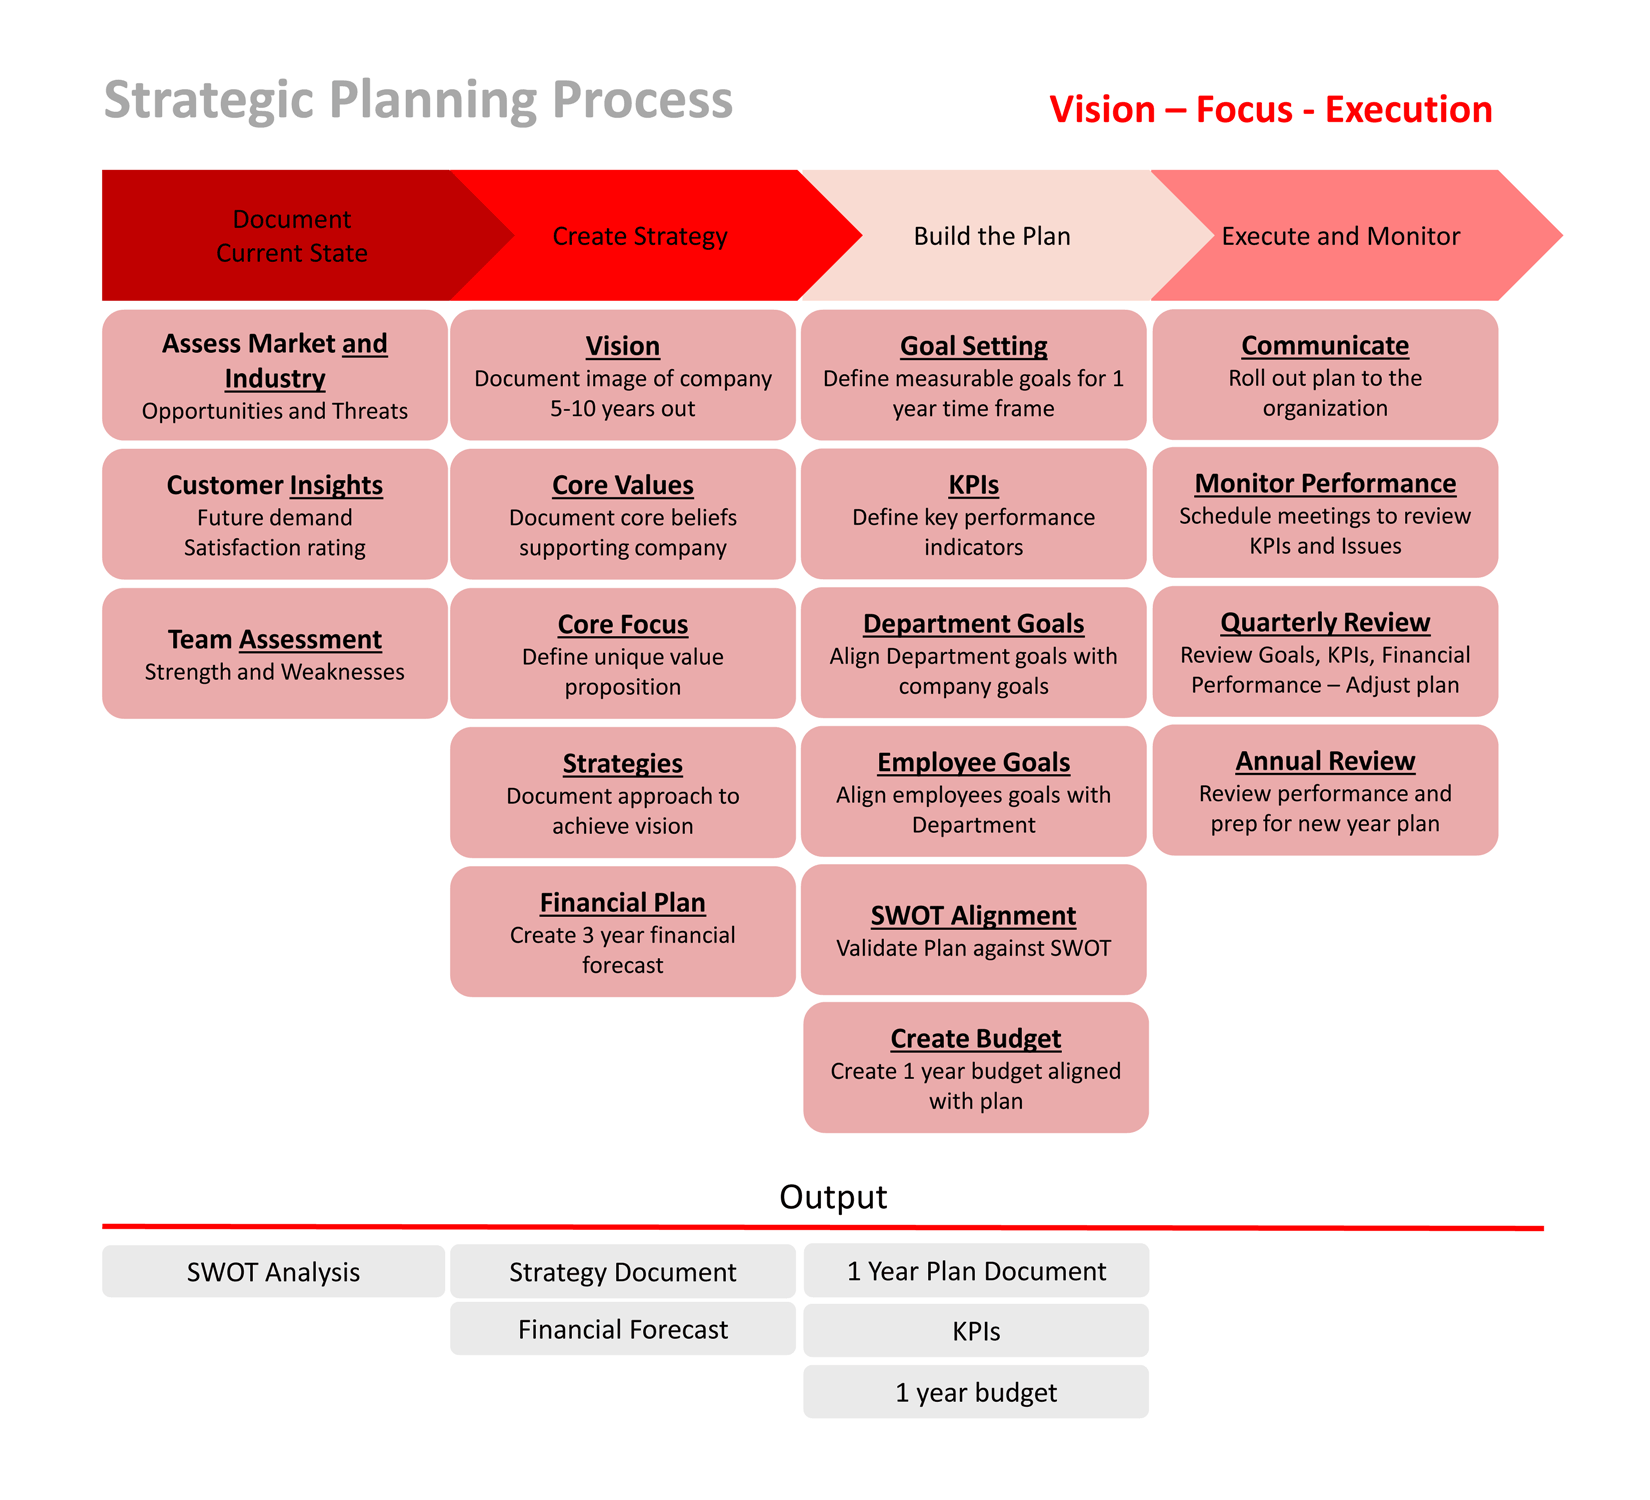 Ace 7 Advisors Strategic Planning Process Graphic